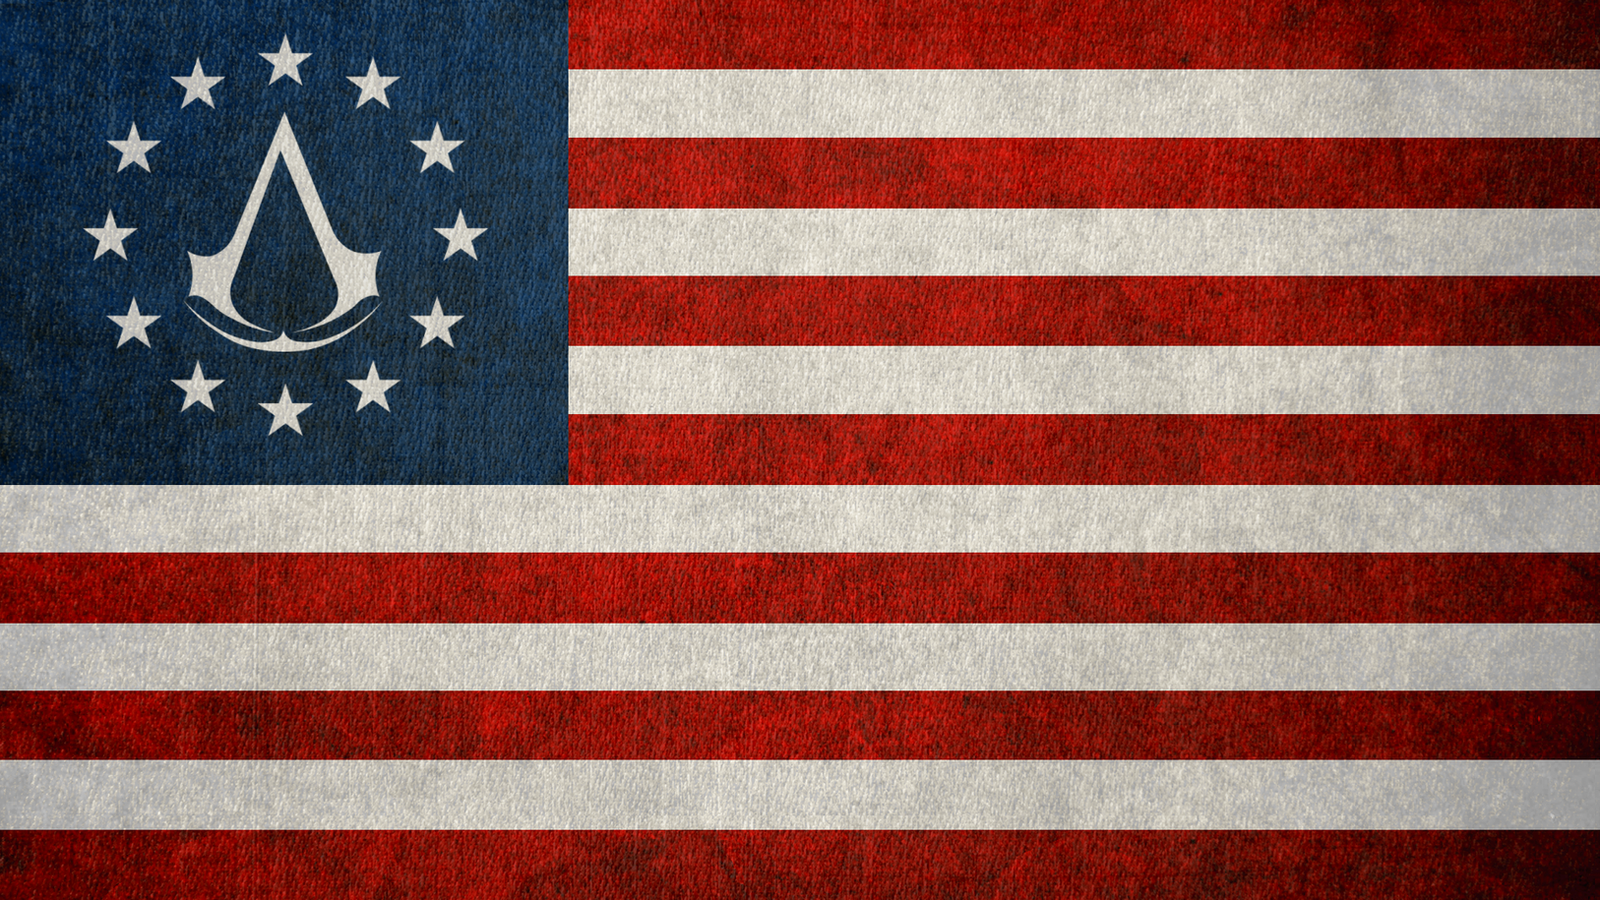 Betsy Ross and the American Flag historical analysis